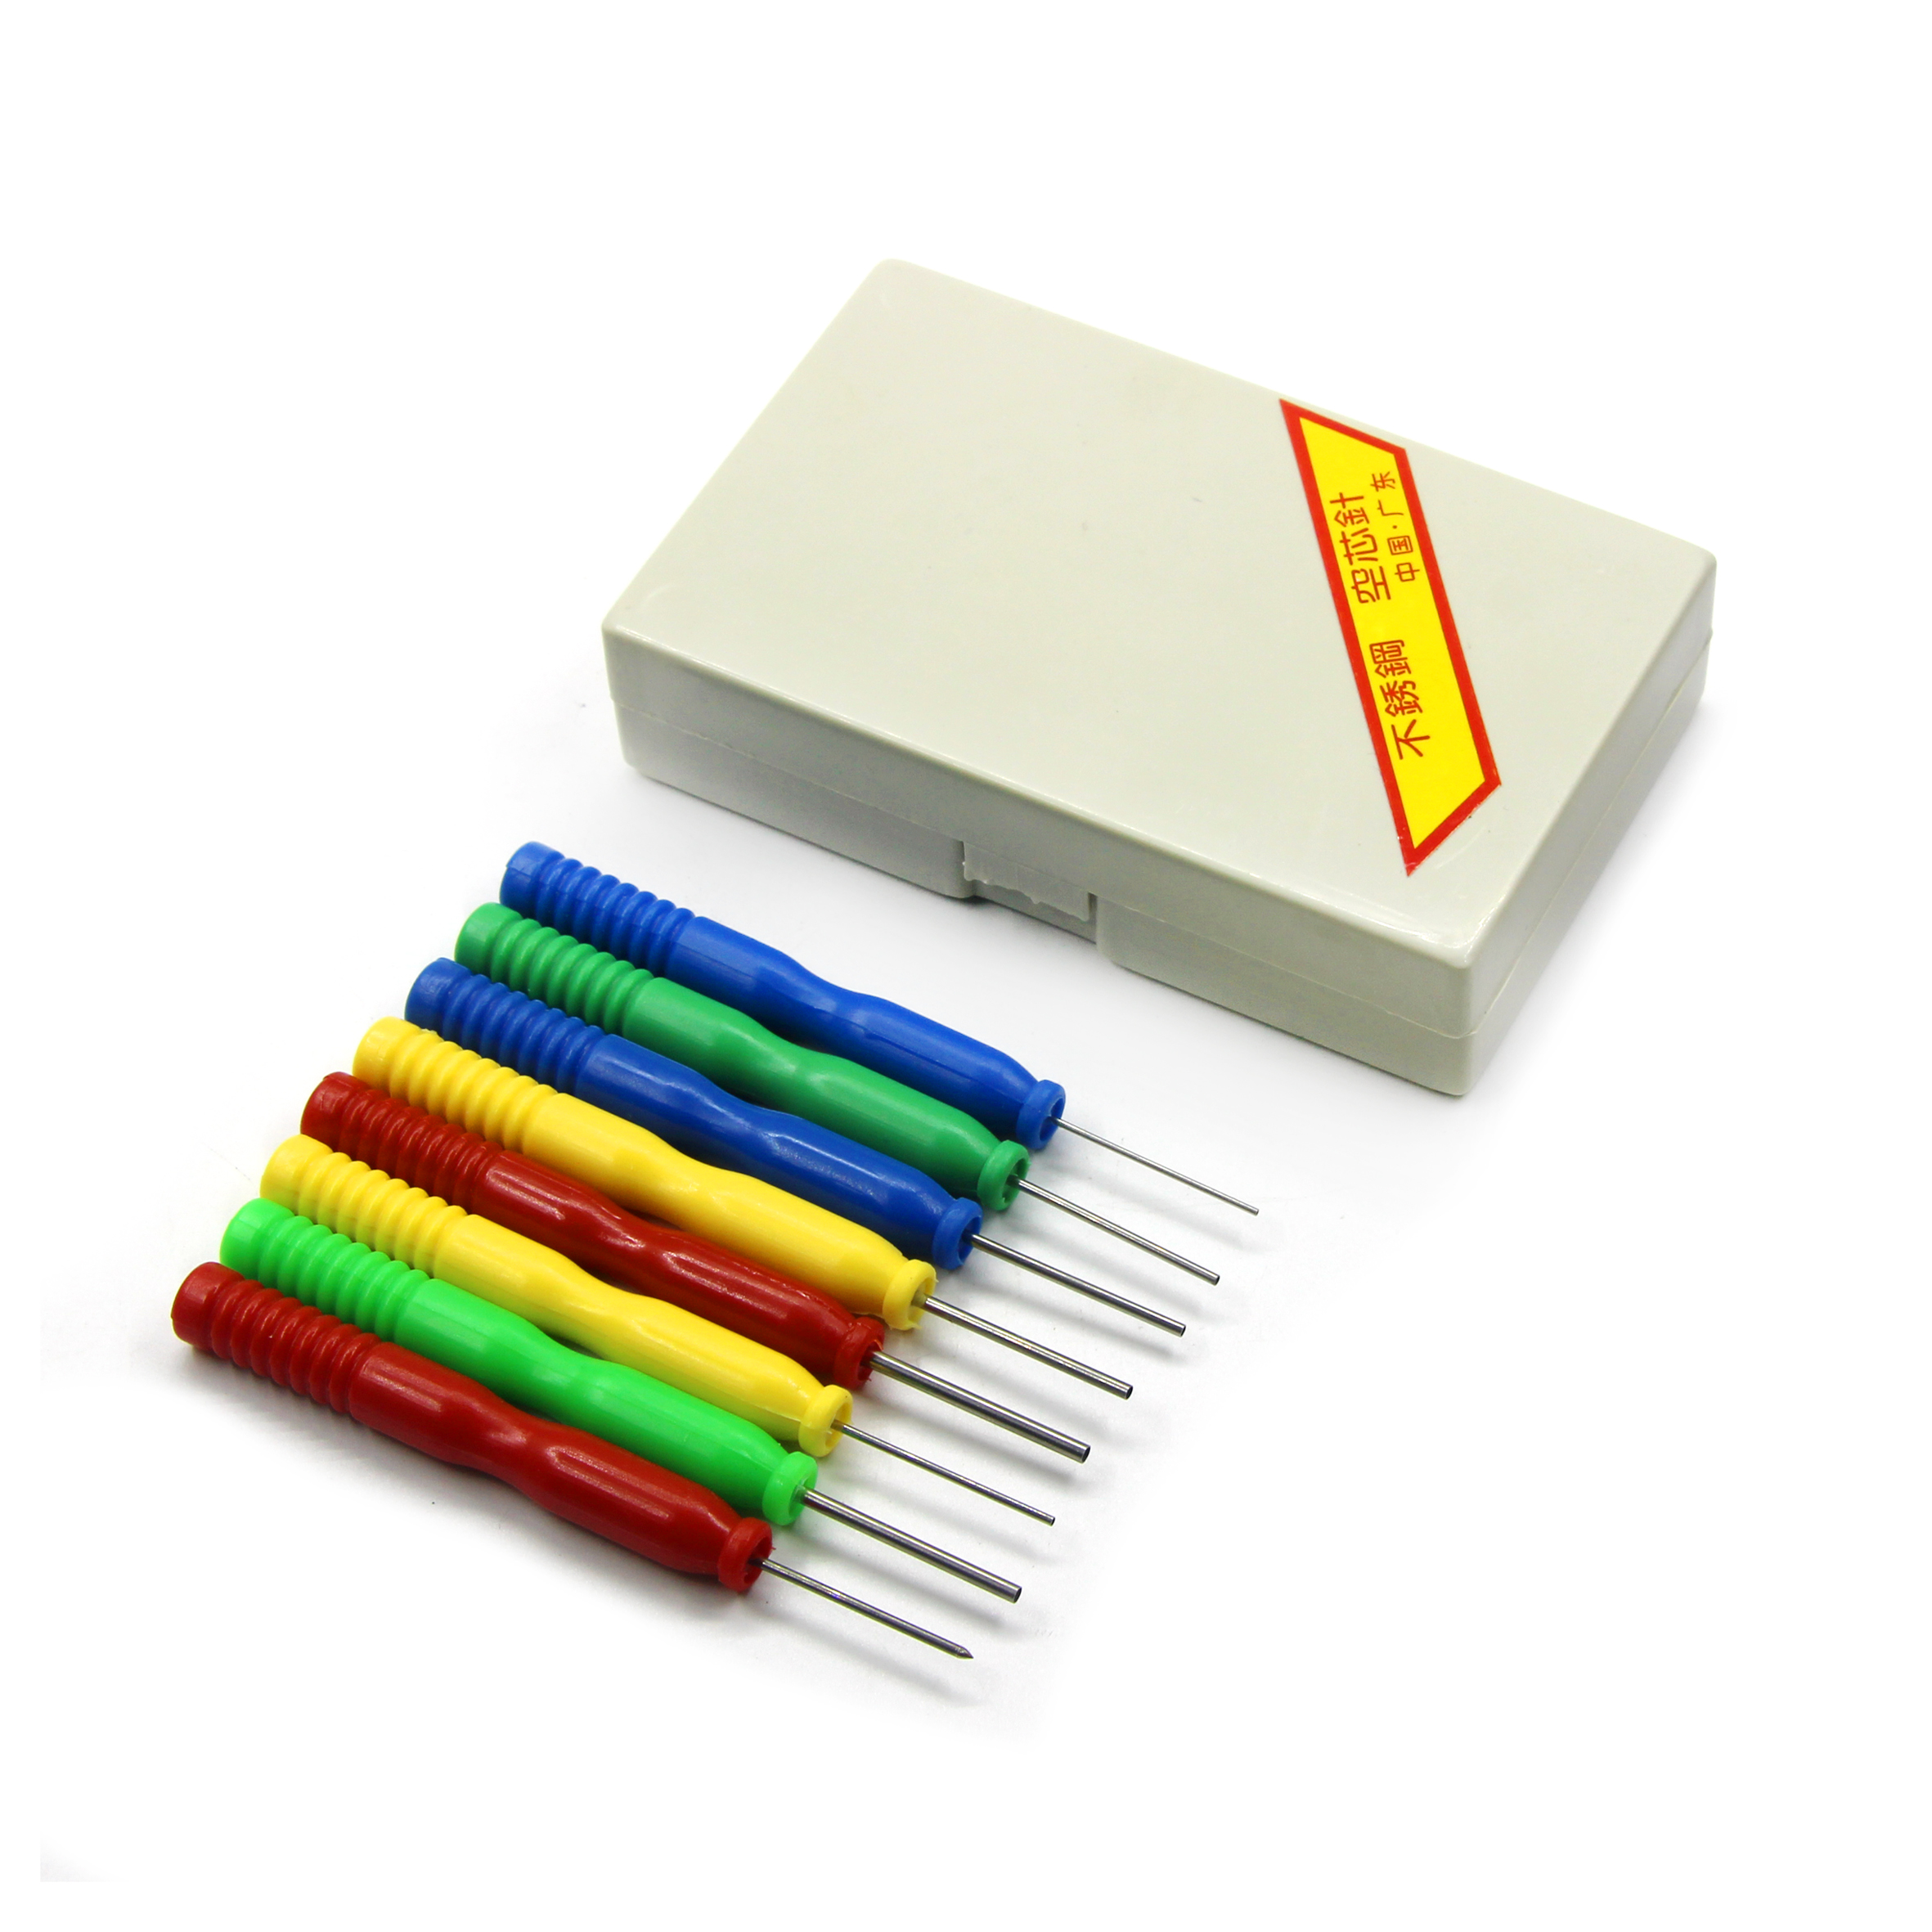 High Quality 8PCS/Lots Hollow Needles Desoldering Tool Electronic Components Stainless Steel Kits